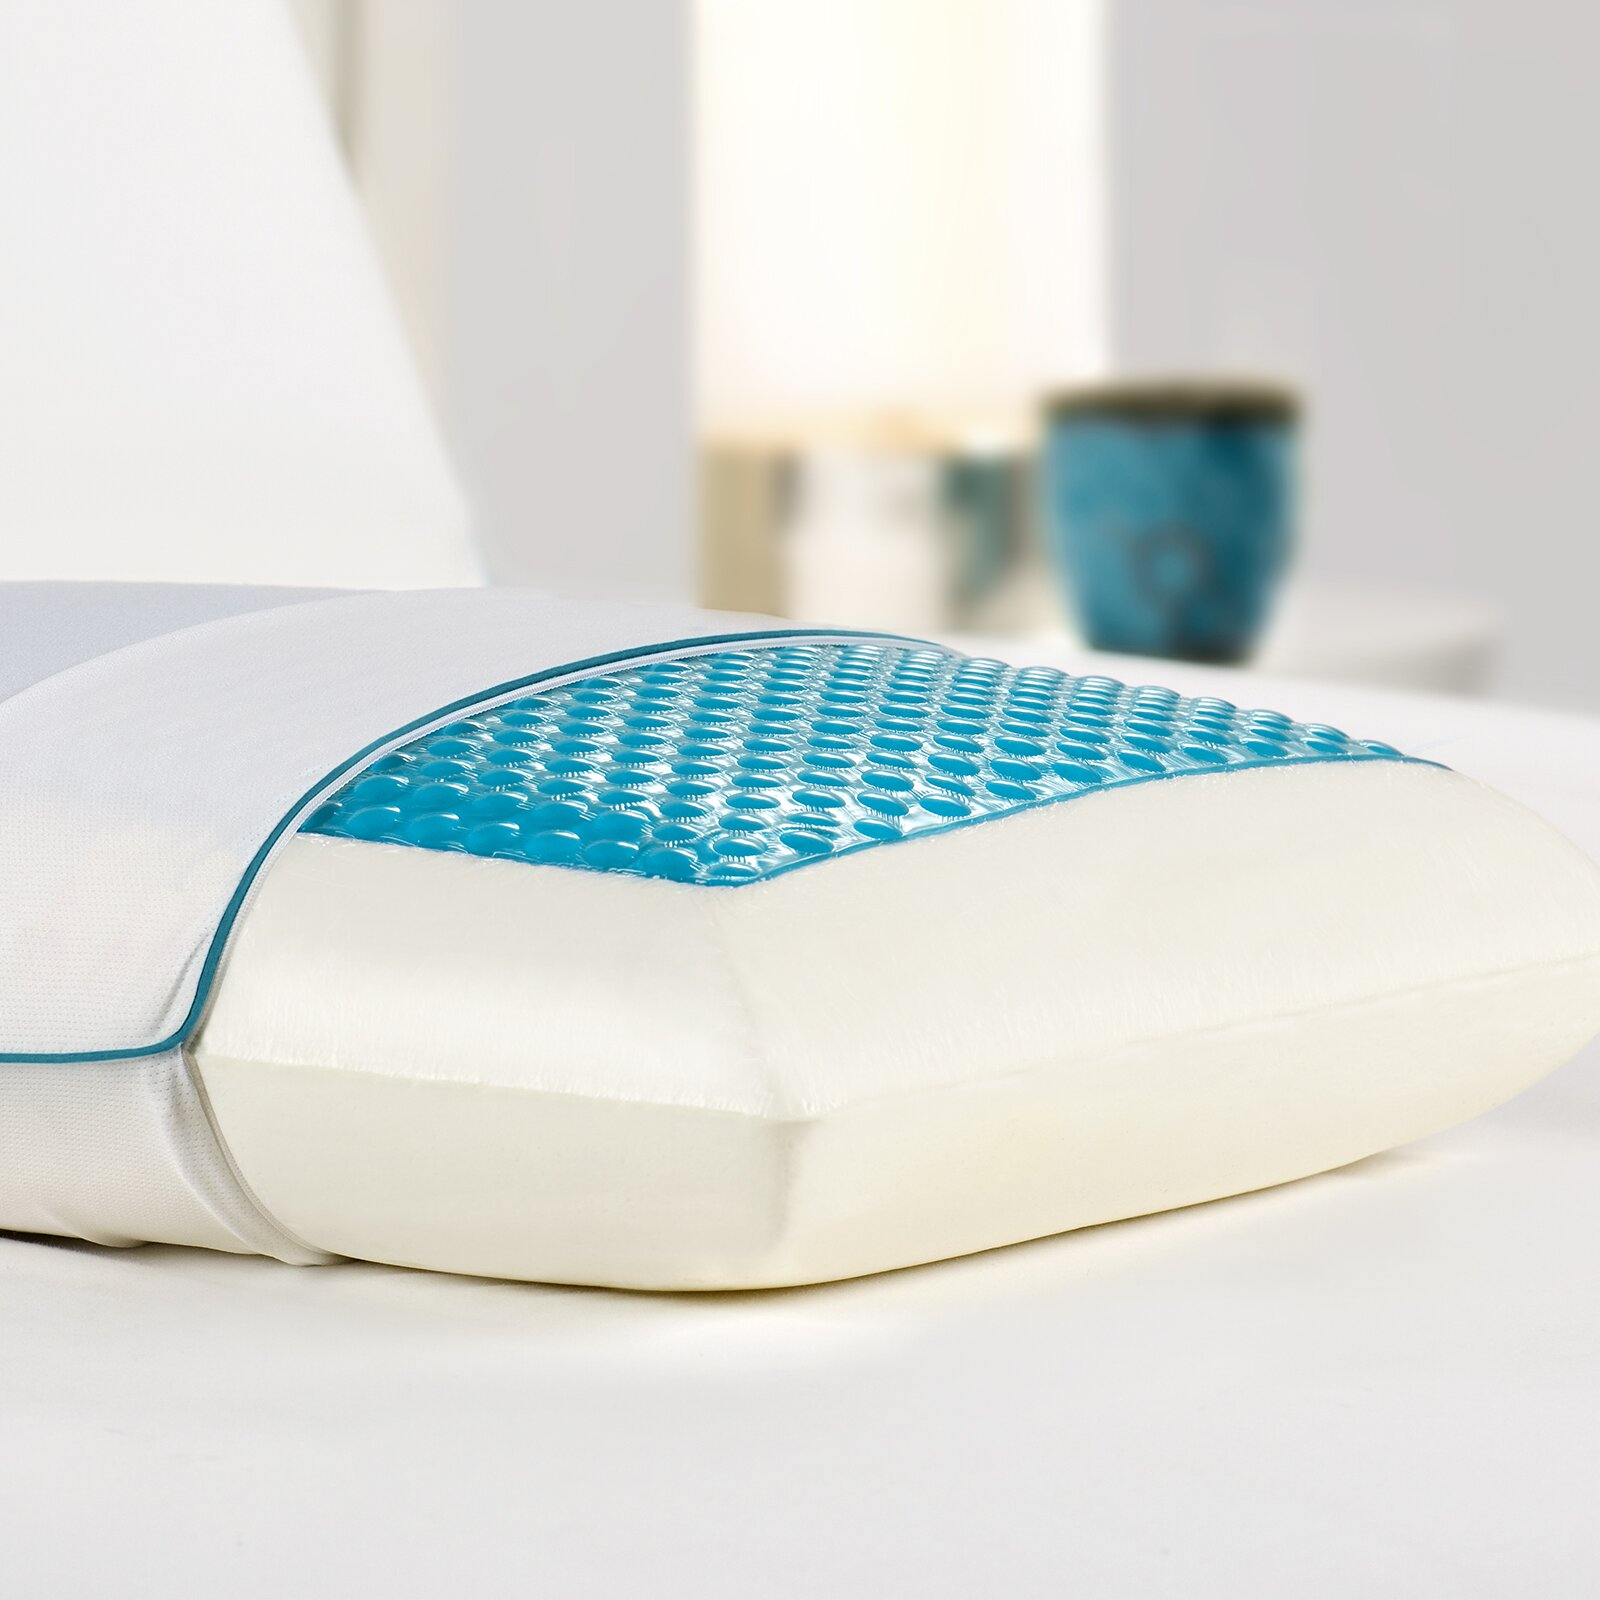 Modern Home Memory Foam Gel Pillow : Comfort Revolution Bed Memory Foam and Hydraluxe Gel Pillow & Reviews Wayfair.ca